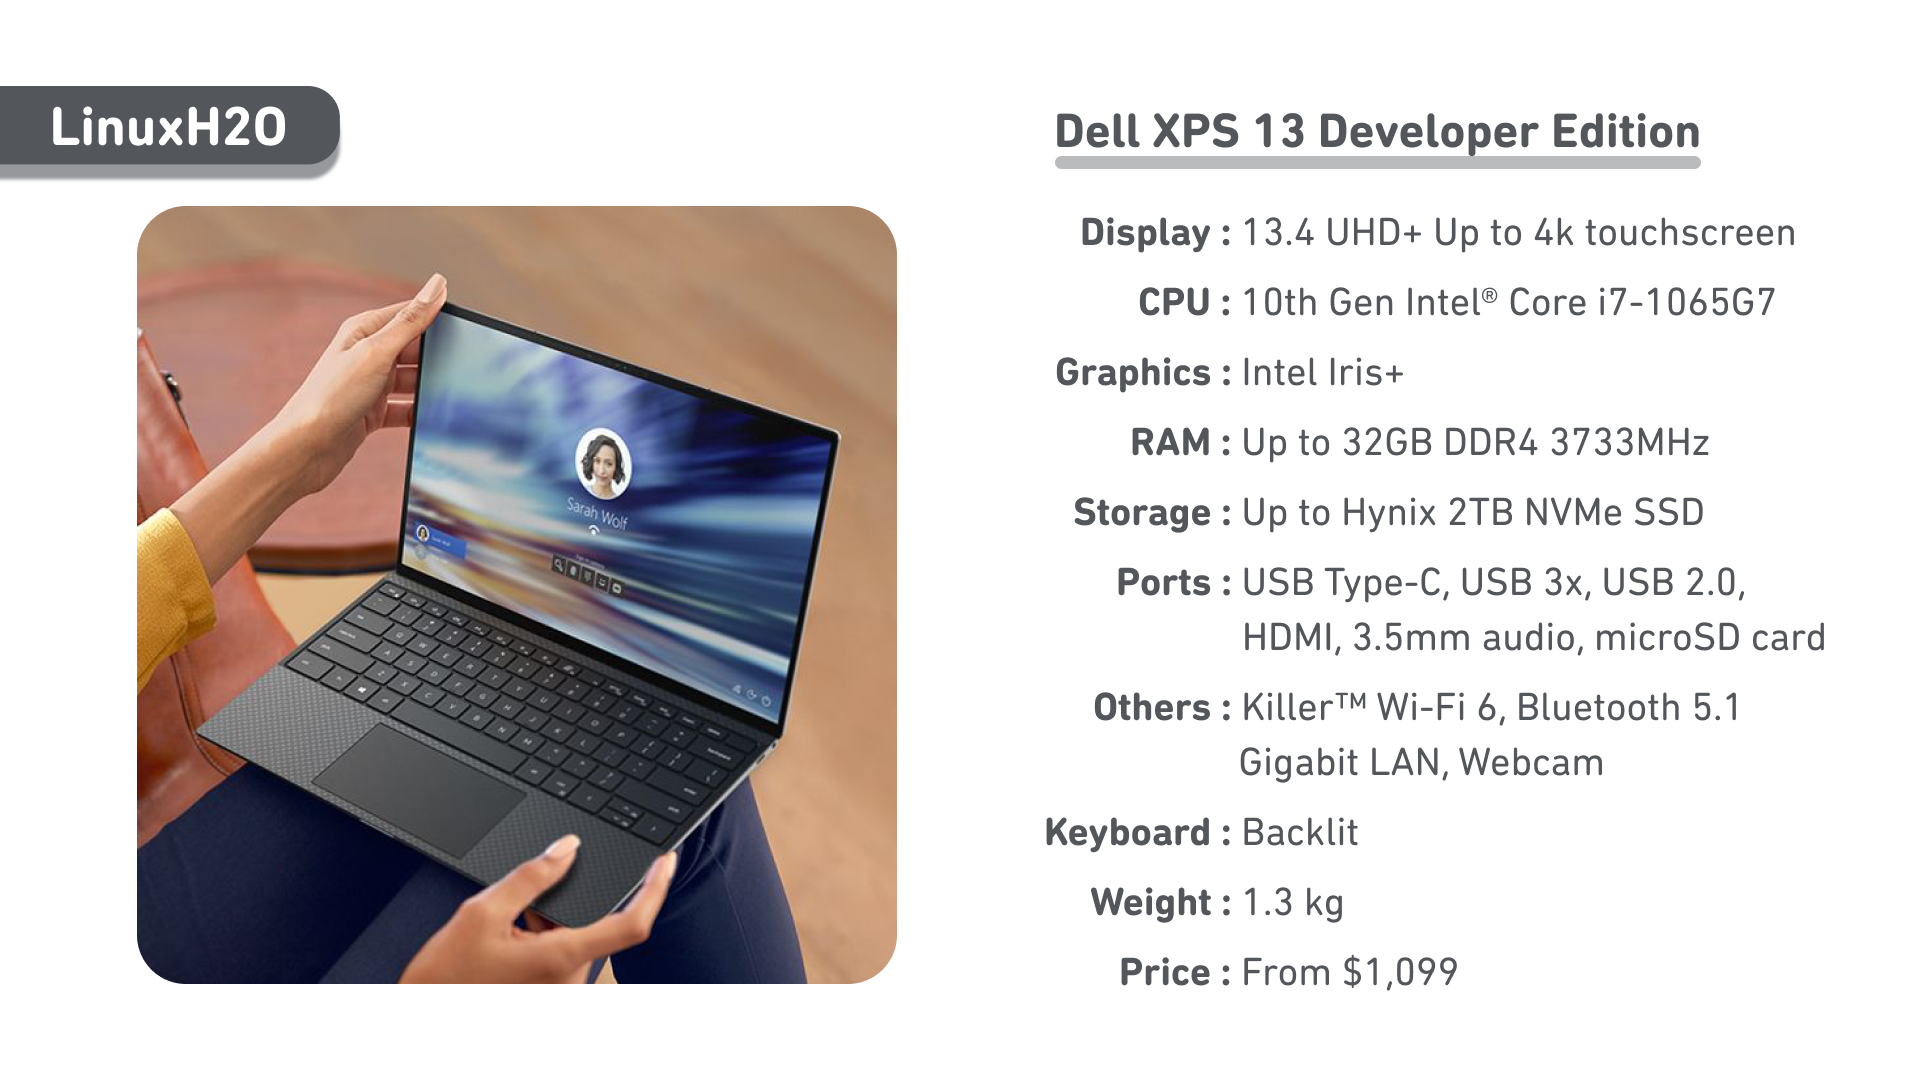 Dell XPS 13 Developer Edition - A linux based laptop specifically build for development